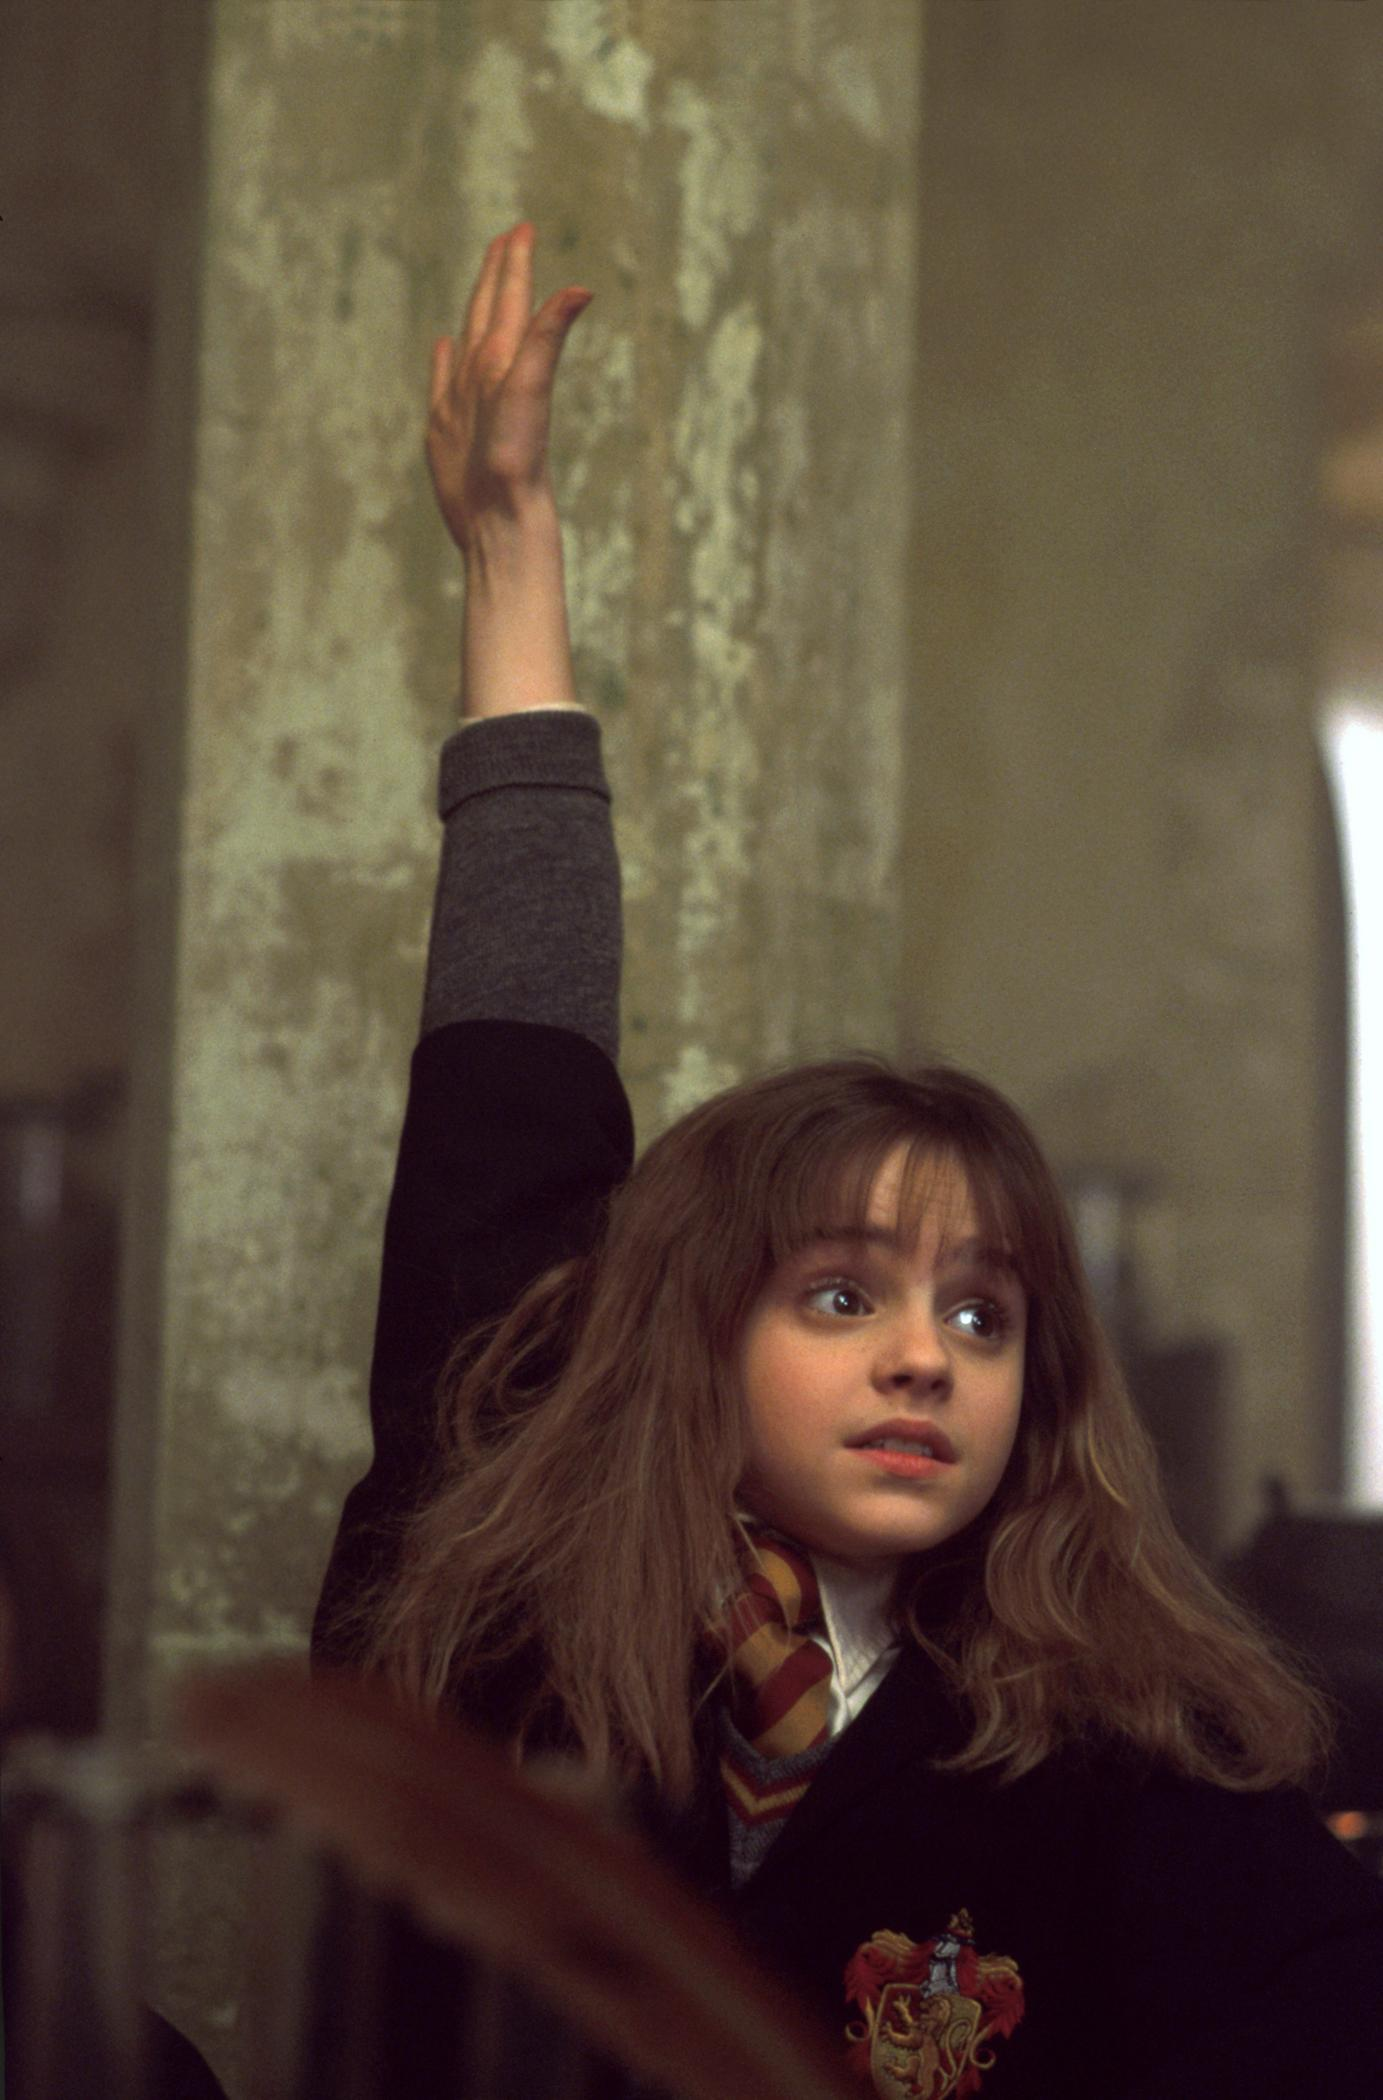 hermione-rasing-her-hand-harry-potter-movies-16644488-1383-2100